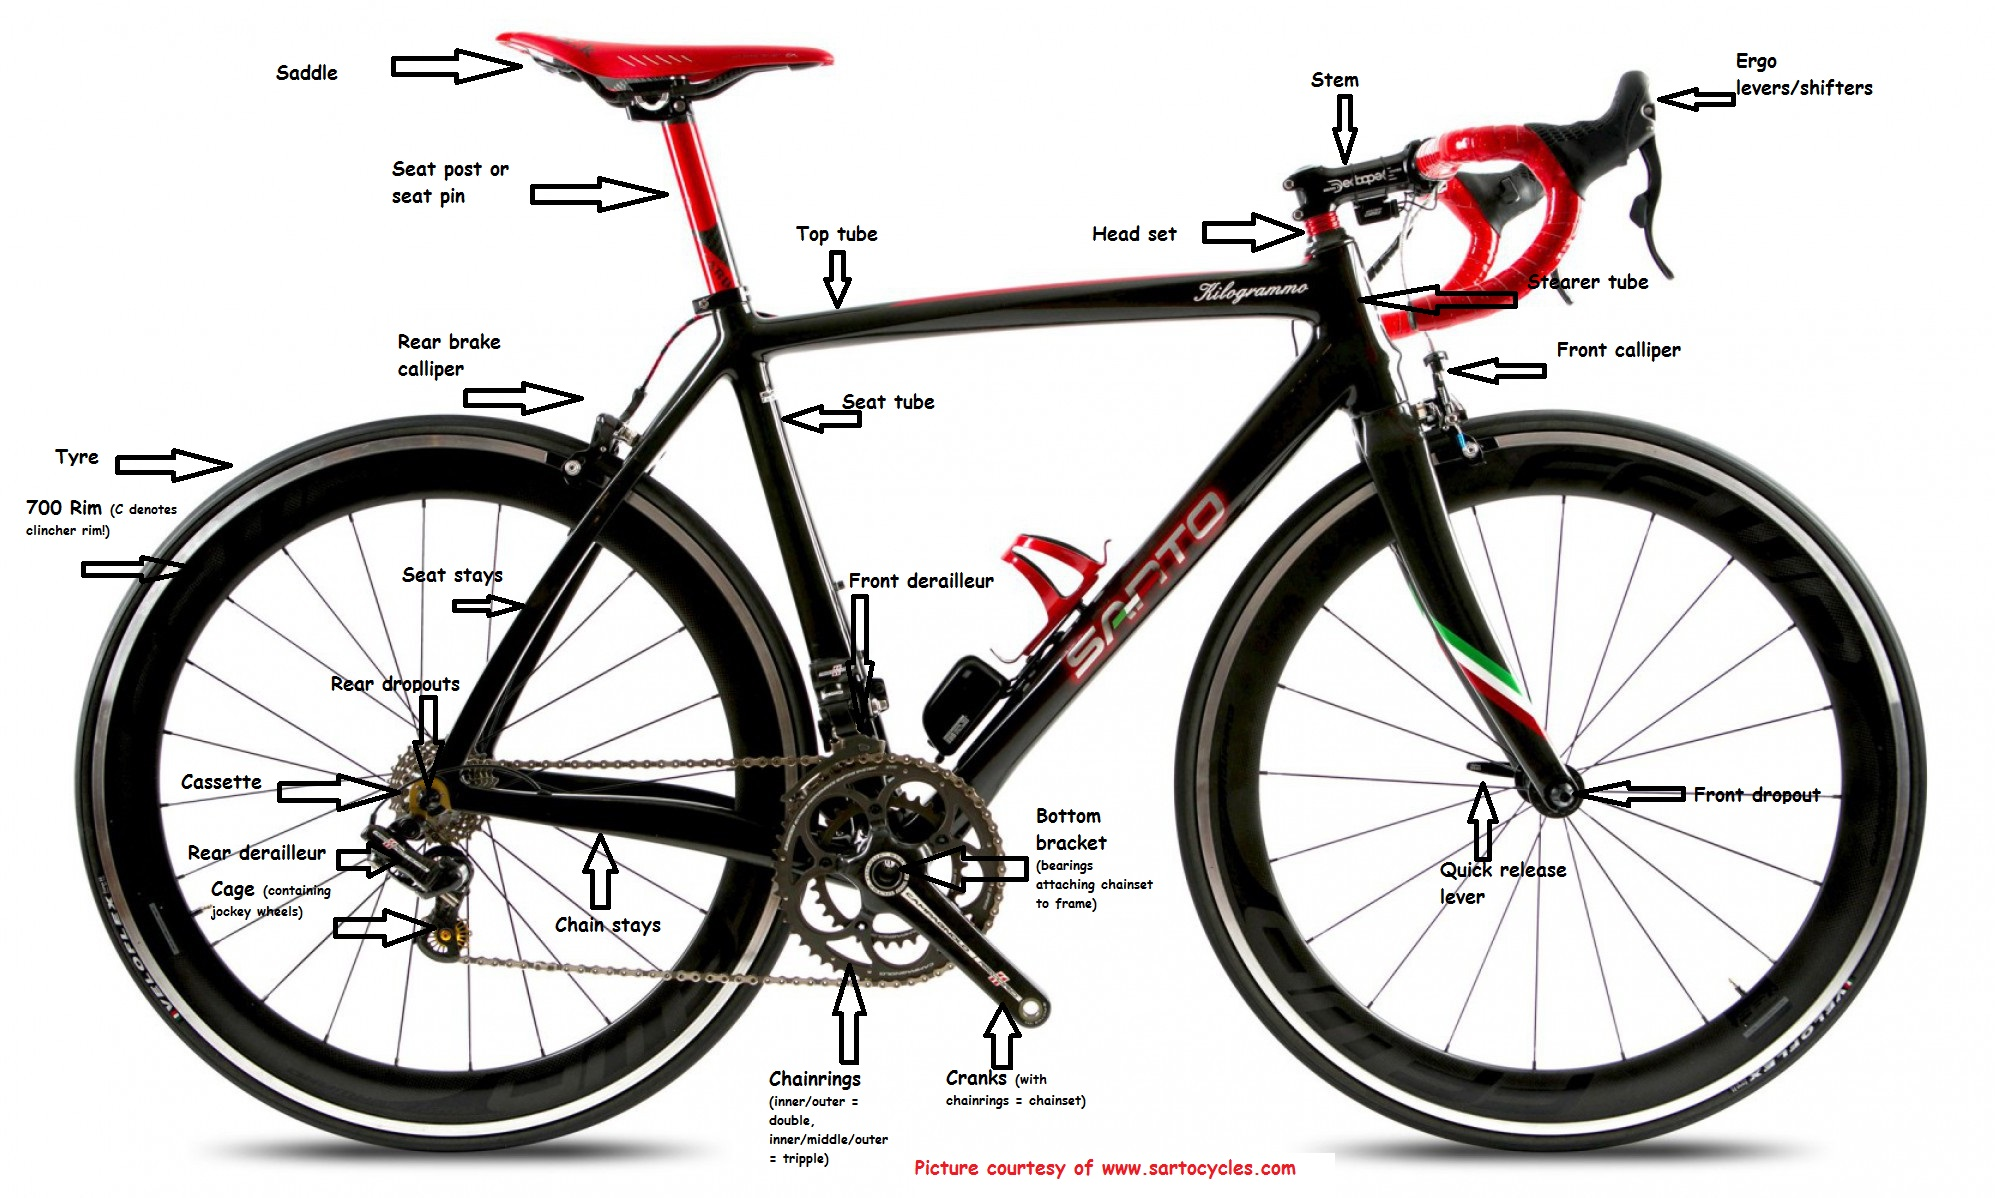 Bikeparts Com Print Discounts Bicycle Diagram And Parts List For Sears Bicycleparts Model Imagequiz Of A